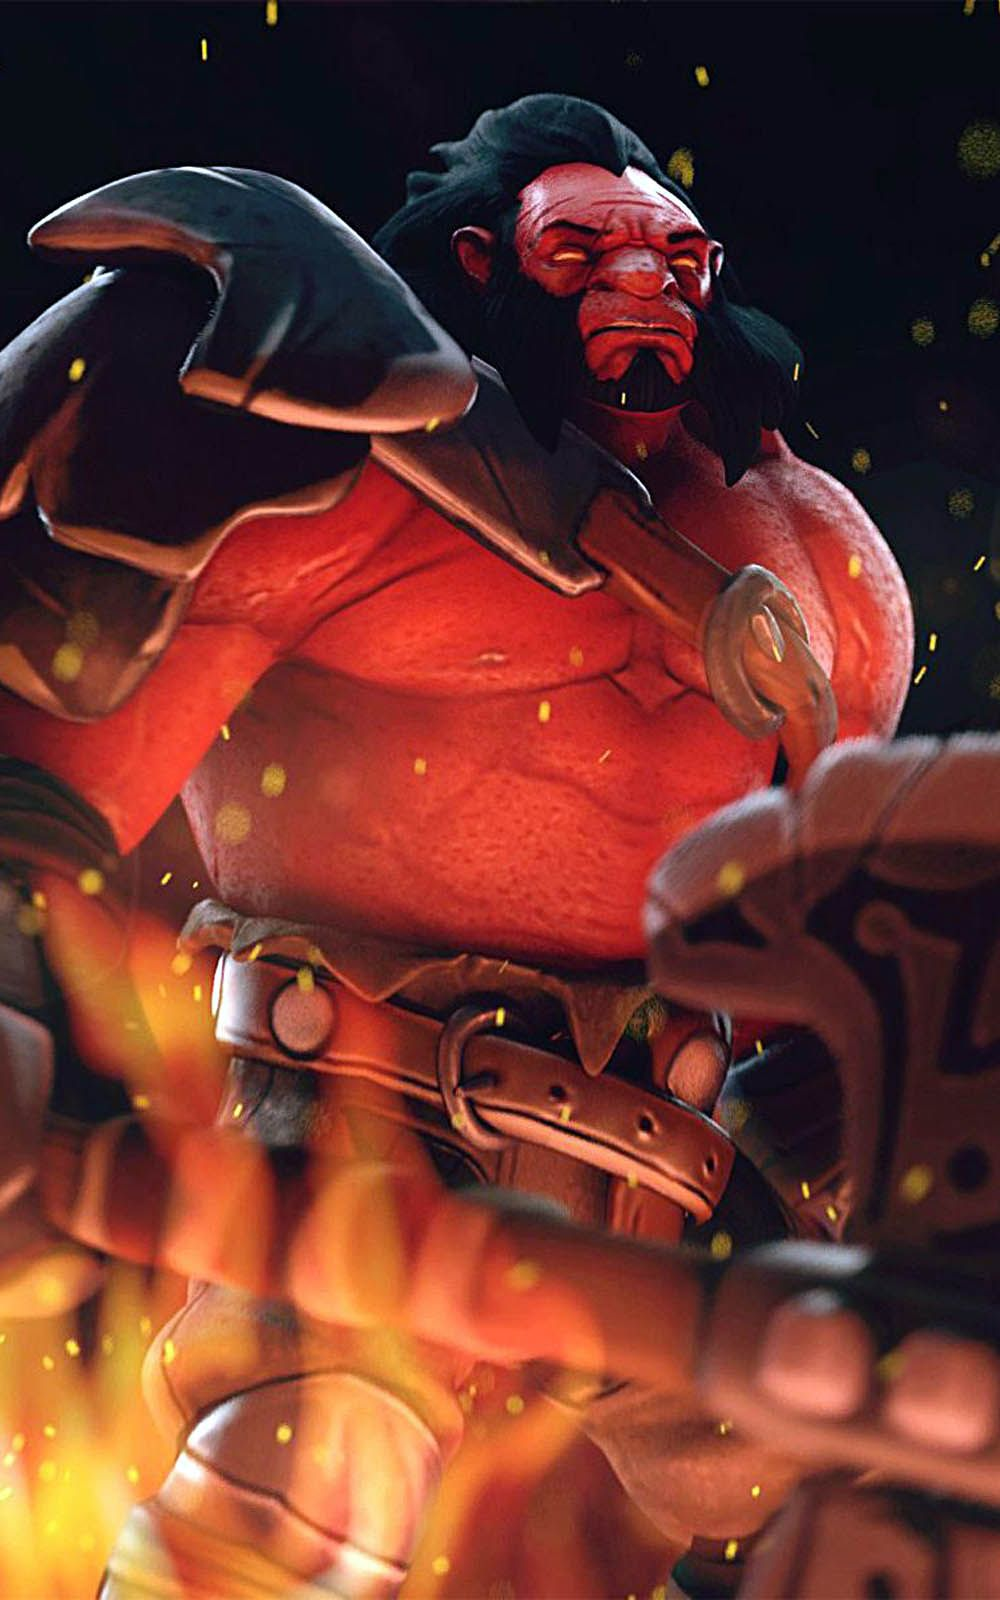 Axe Dota 2 Gaming Pinterest Dota 2 Game Character And Games